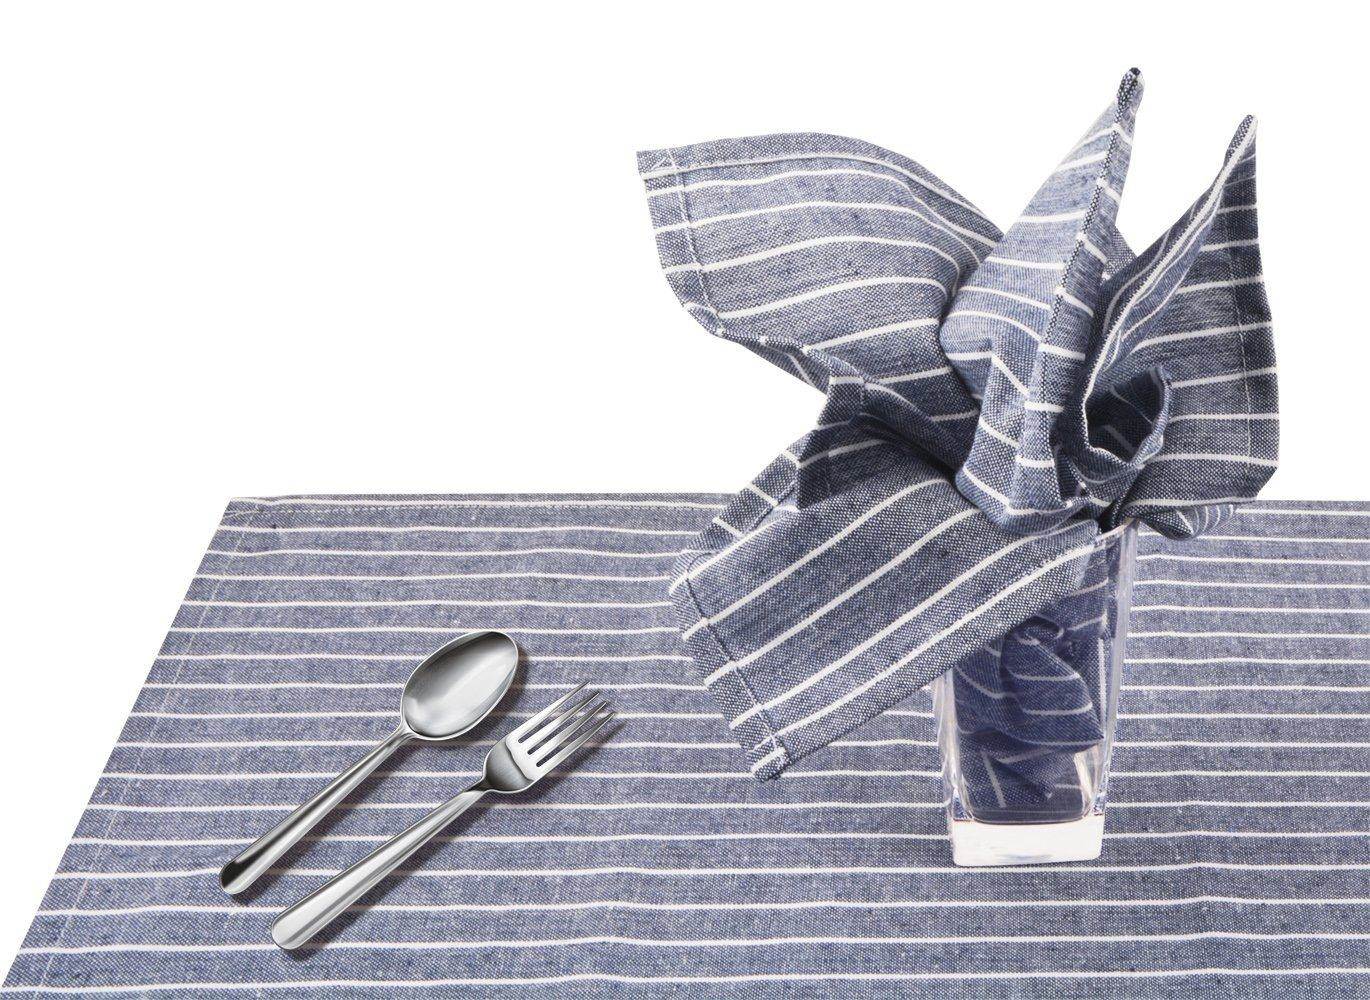 Sinland Linen Napkins Oversized Dinner Napkins Tailored with Mitered Corners and a Generous Hem 20Inch x 20Inch 6 Packs (Grey Blue) by Sinland (Image #6)